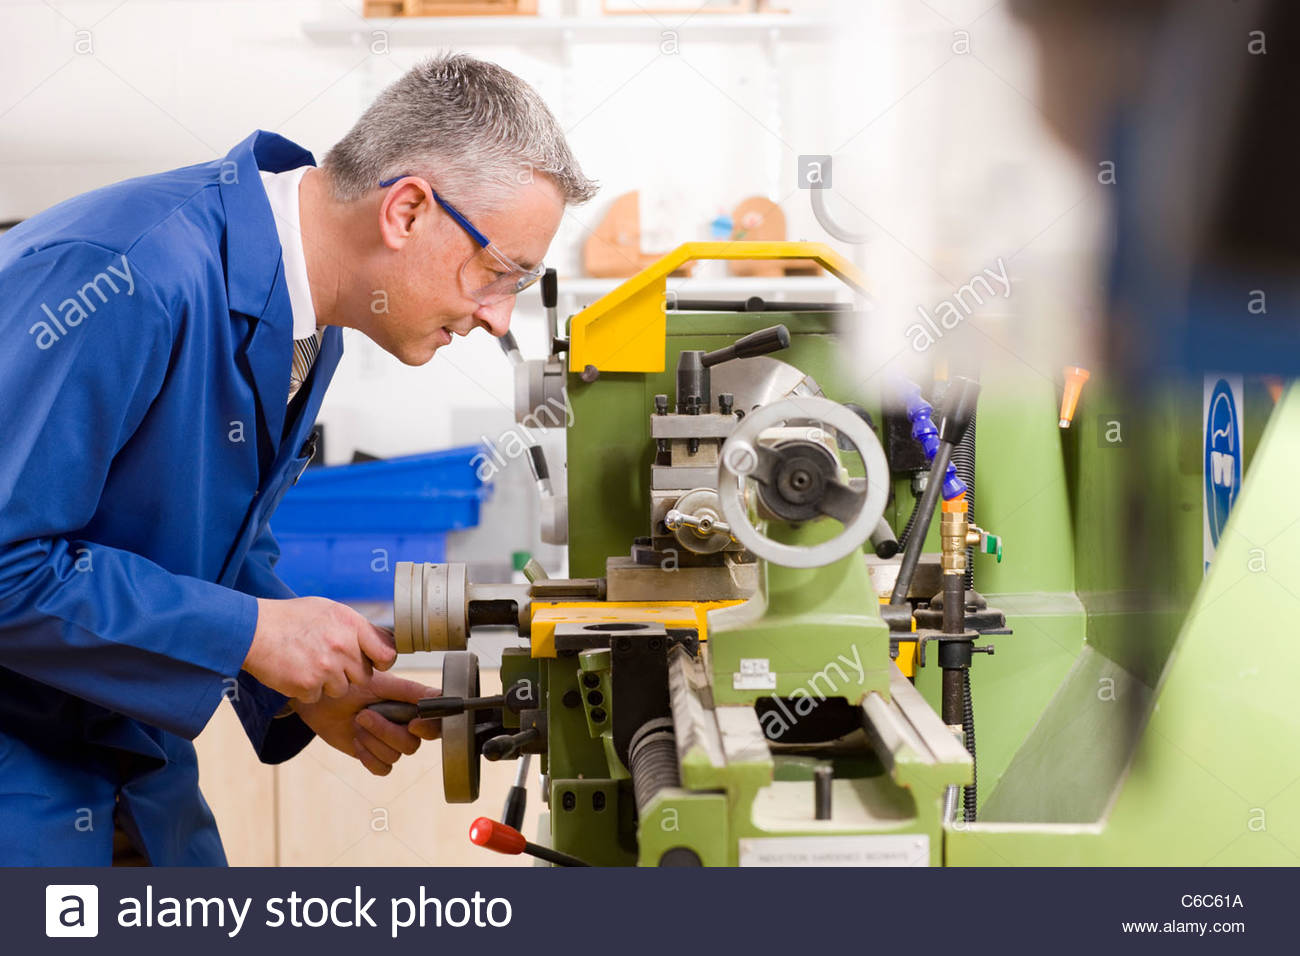 Metalworker using lathe in workshop - Stock Image